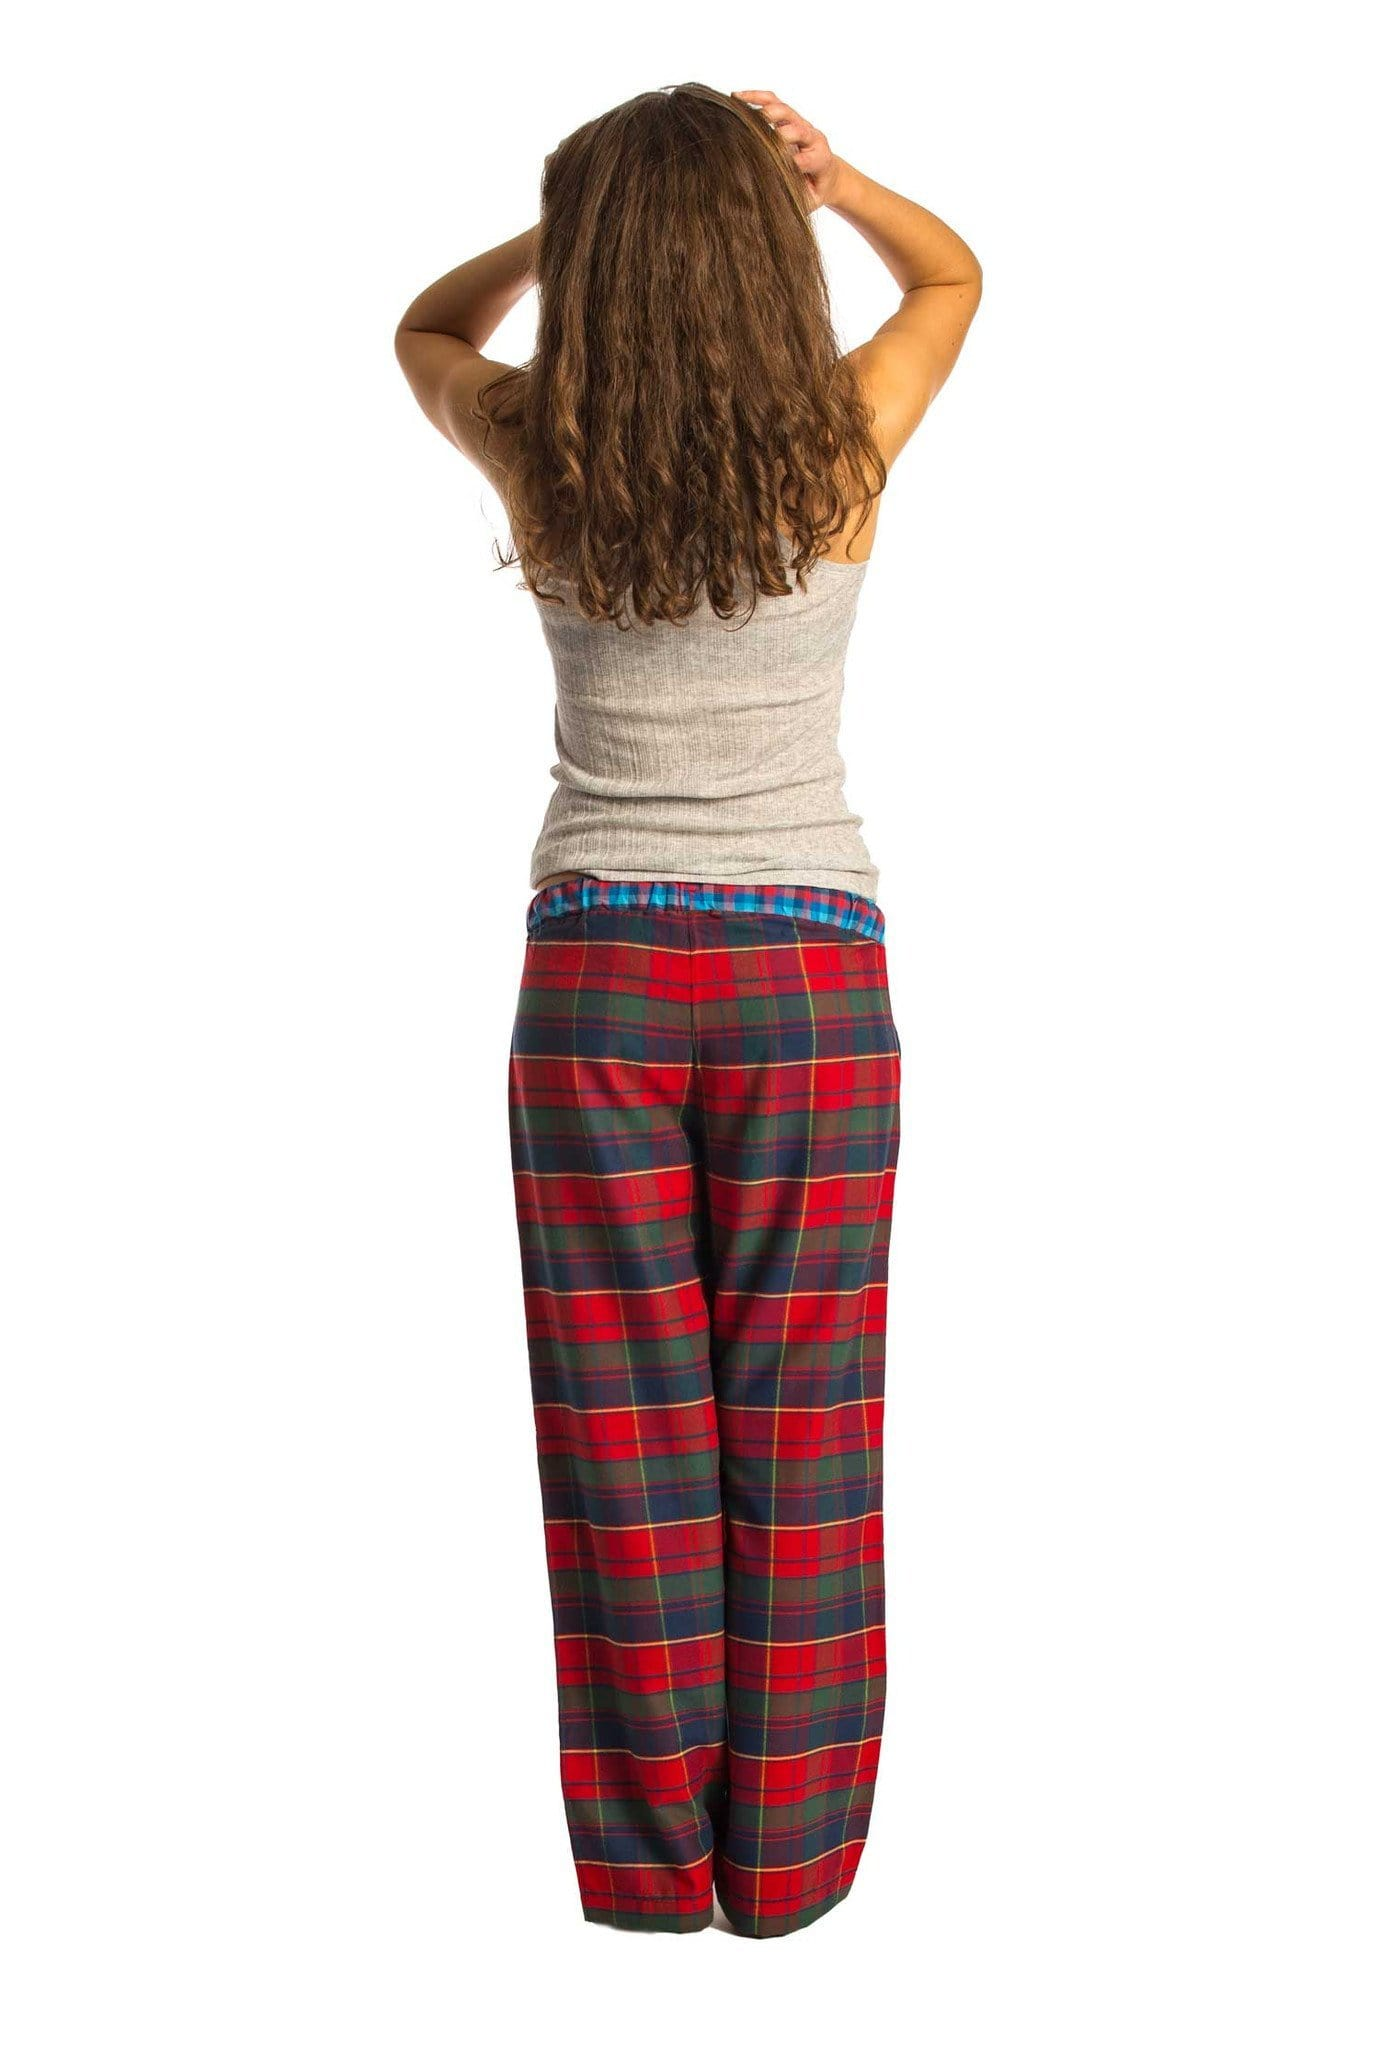 Wylye red and blue check lounge pants - Women's